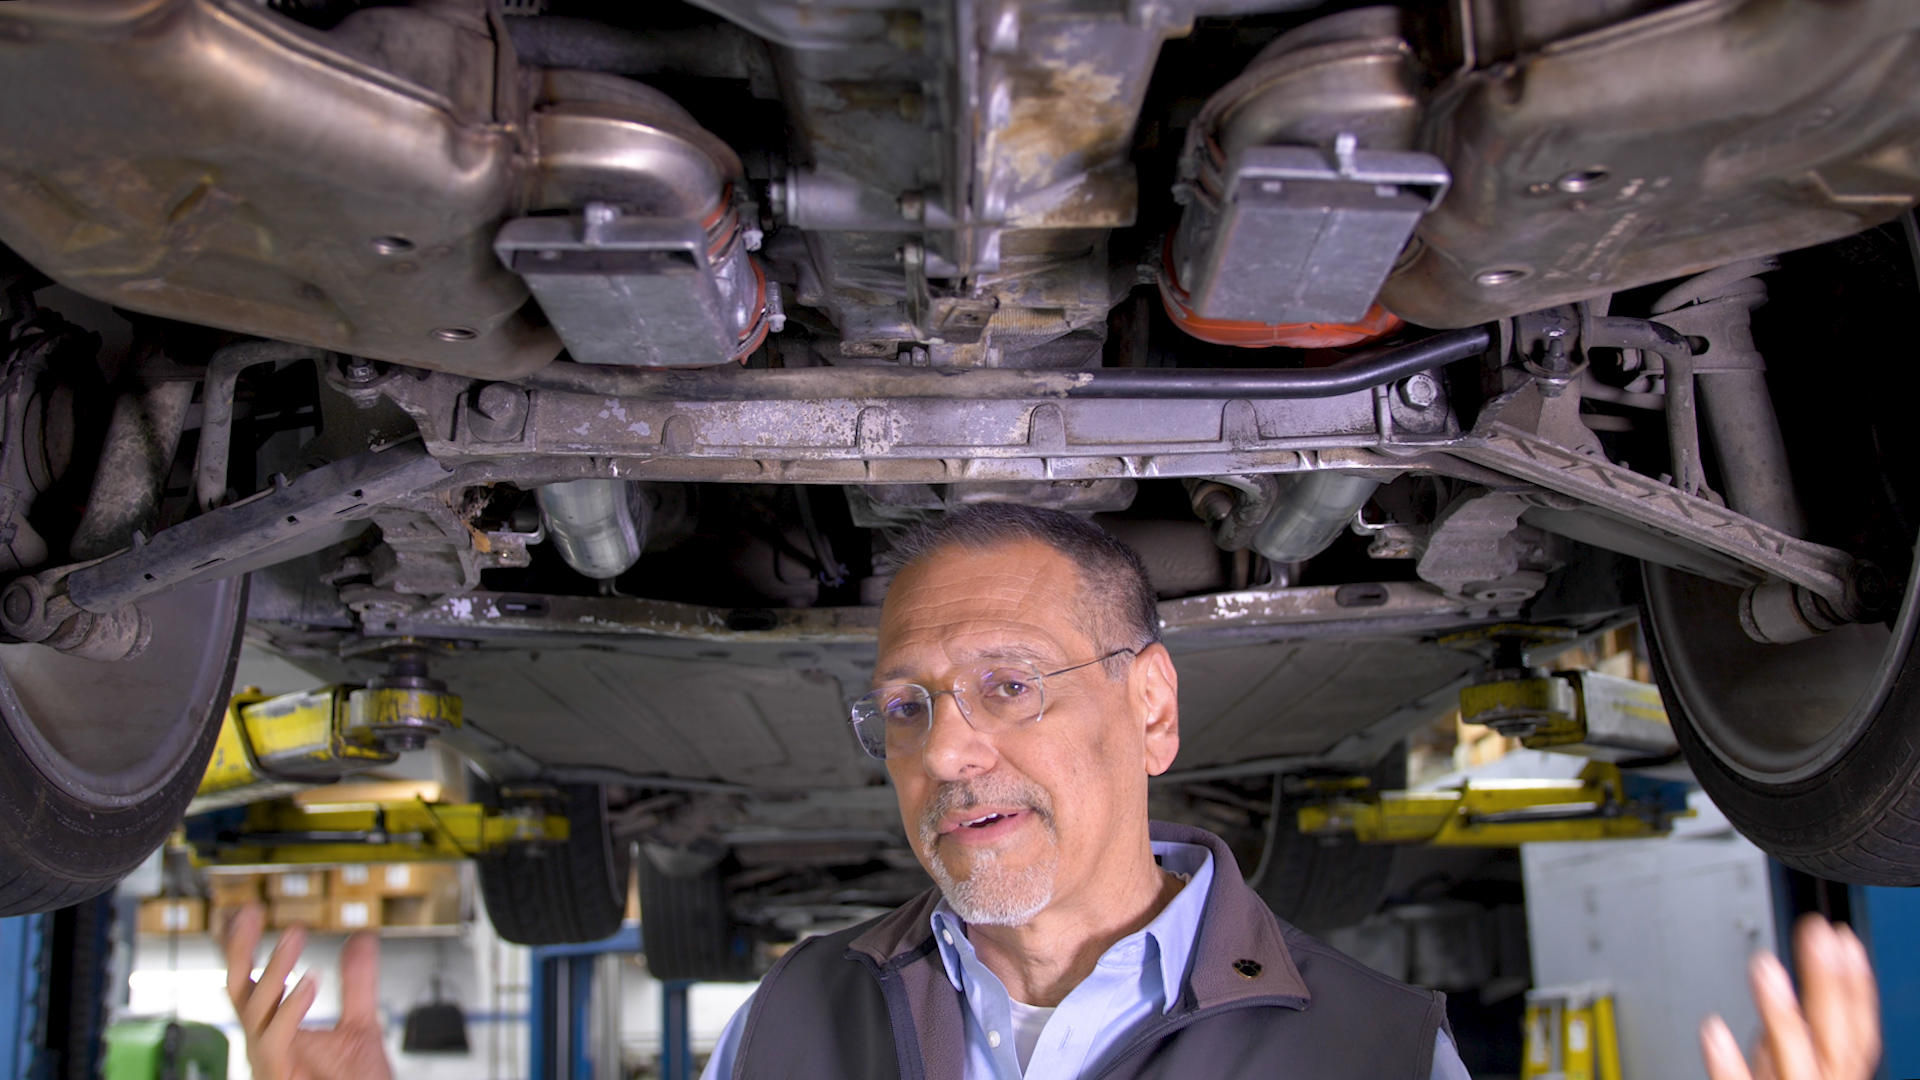 Video: See why air-cooled engines are legendary